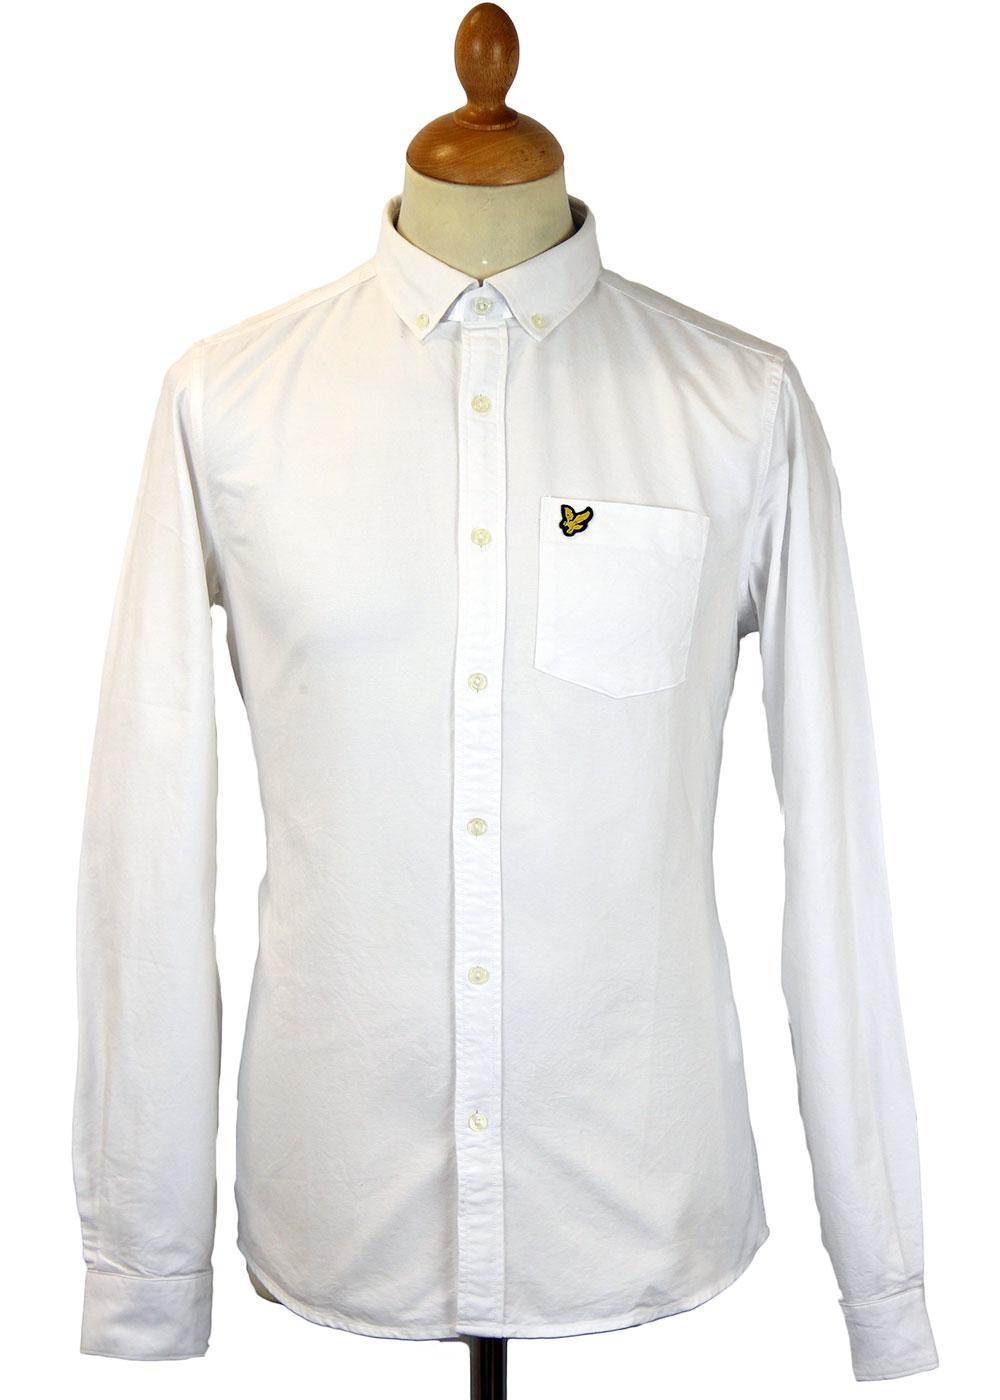 LYLE & SCOTT Retro Mod Button Down Oxford Shirt W